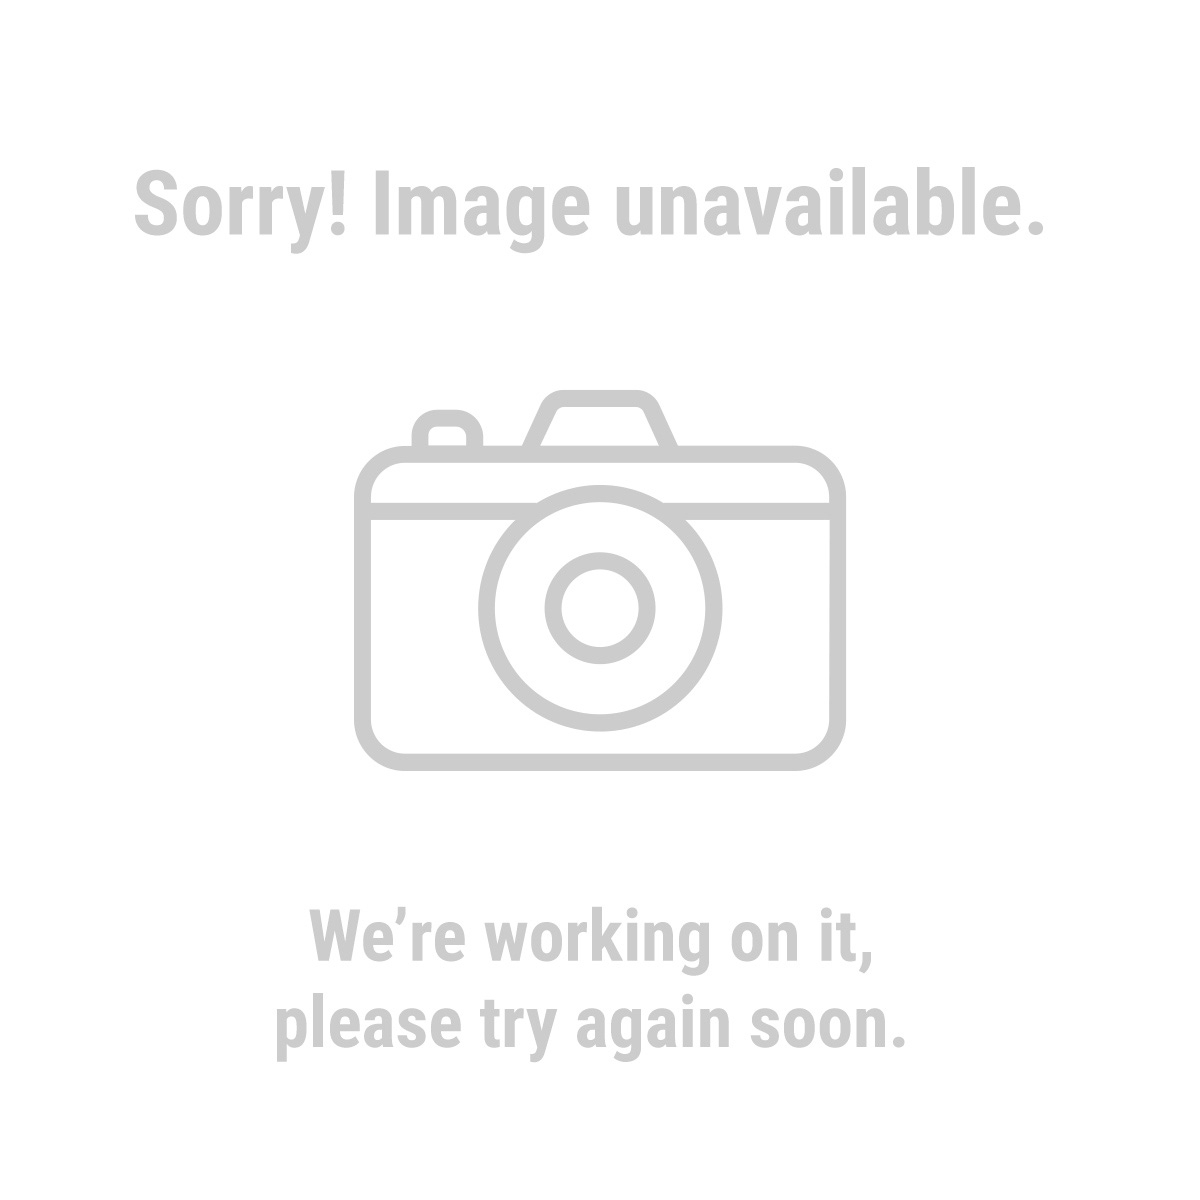 Storehouse® 67644 205 Piece HNBR O-Ring Kit